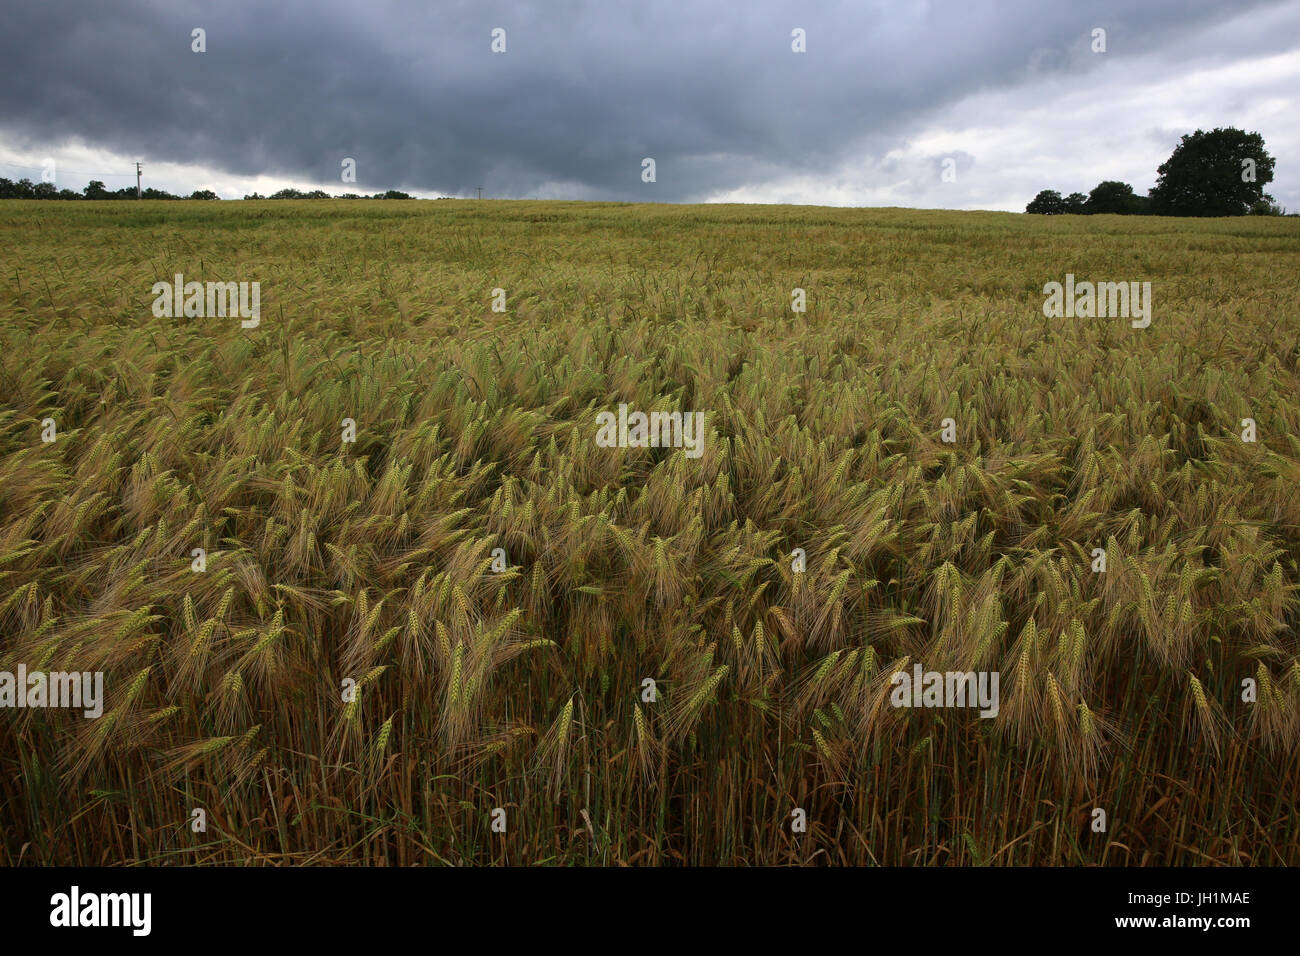 Wheat field. France. - Stock Image